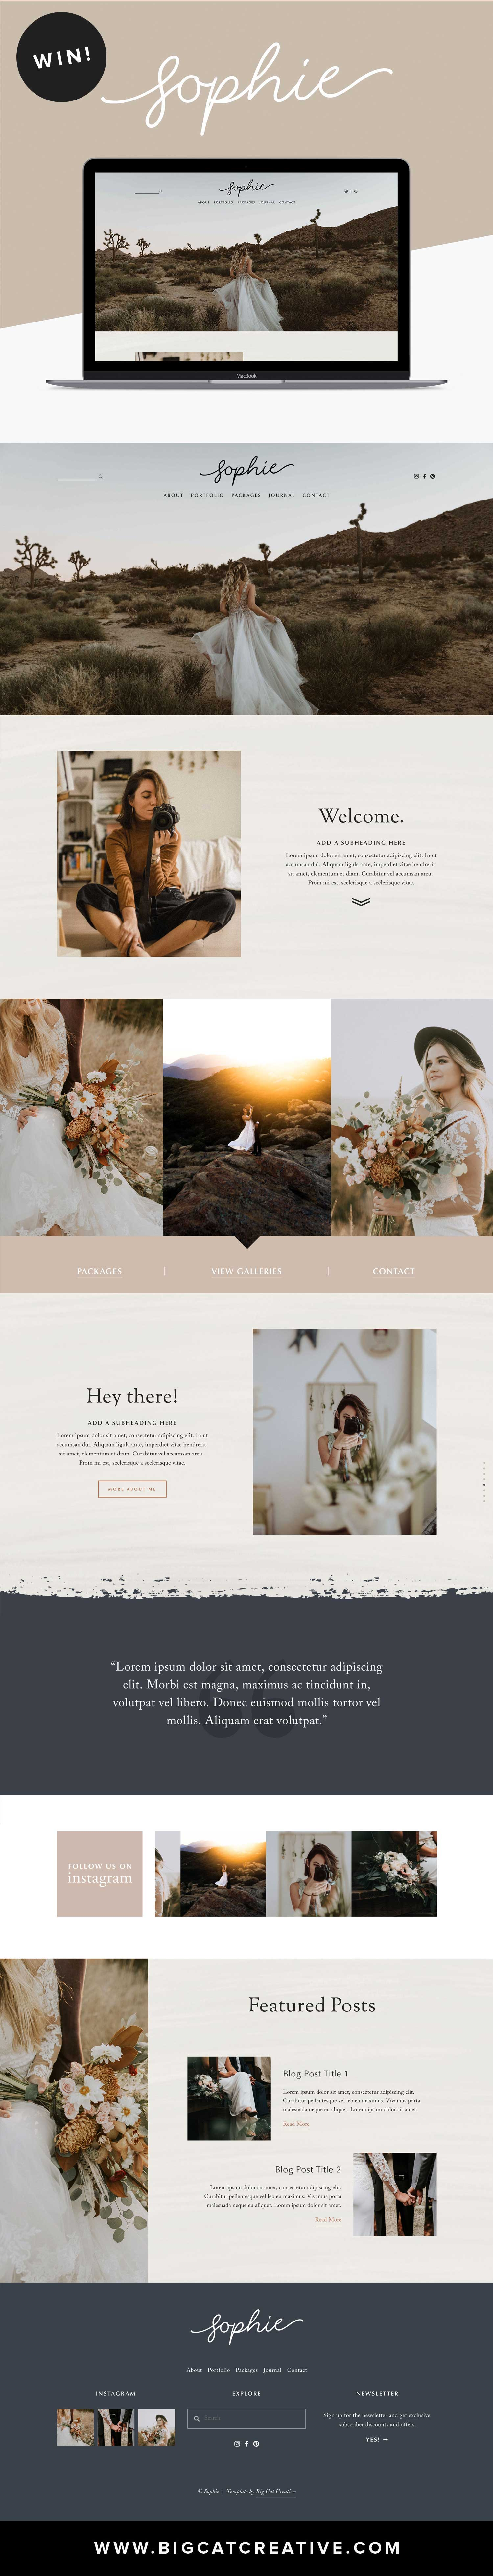 Sophie Squarespace Template Kit by Big Cat Creative